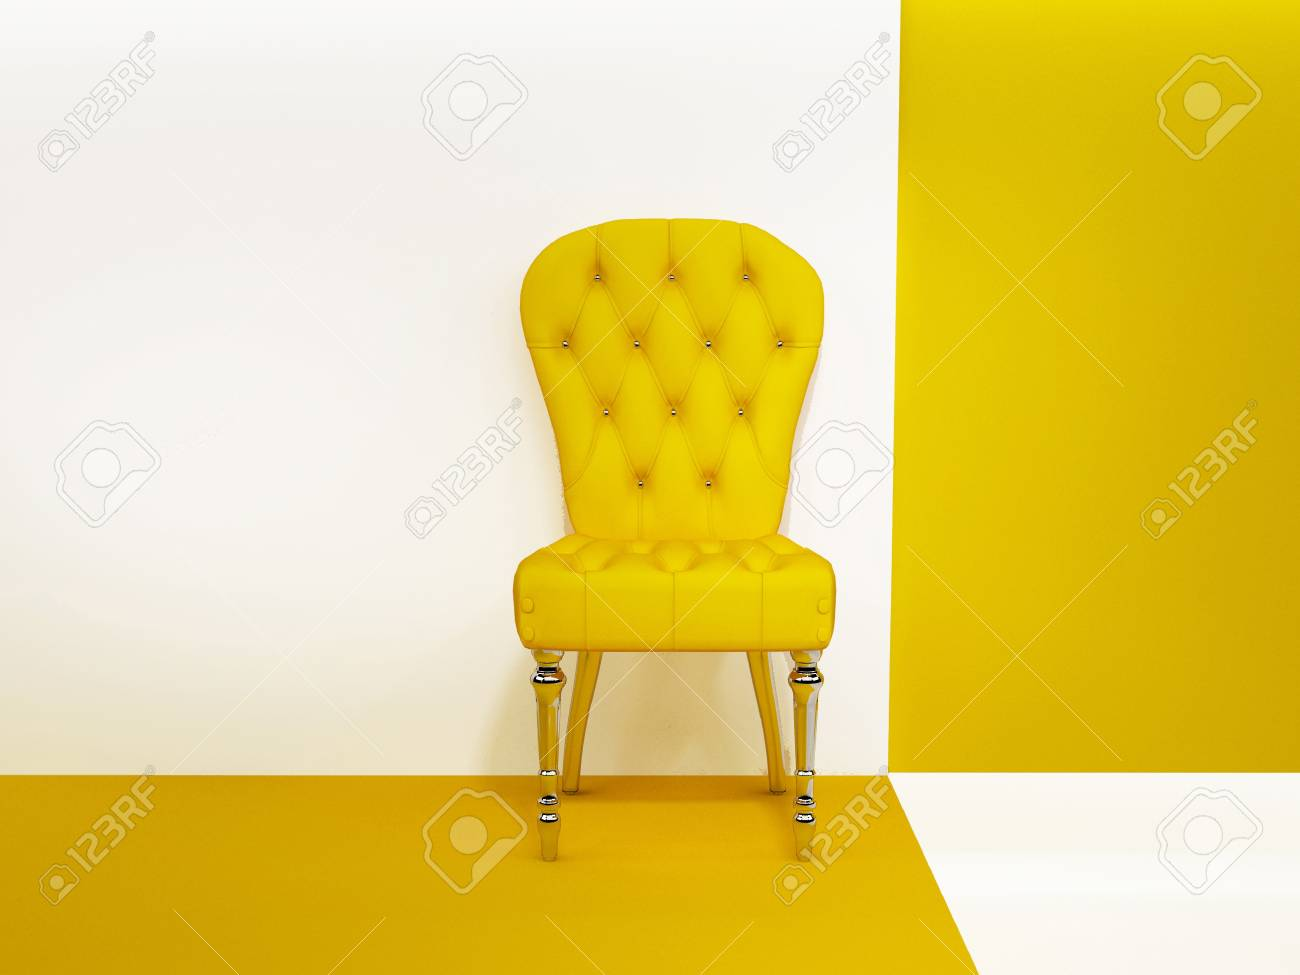 Chaise d'abstraction